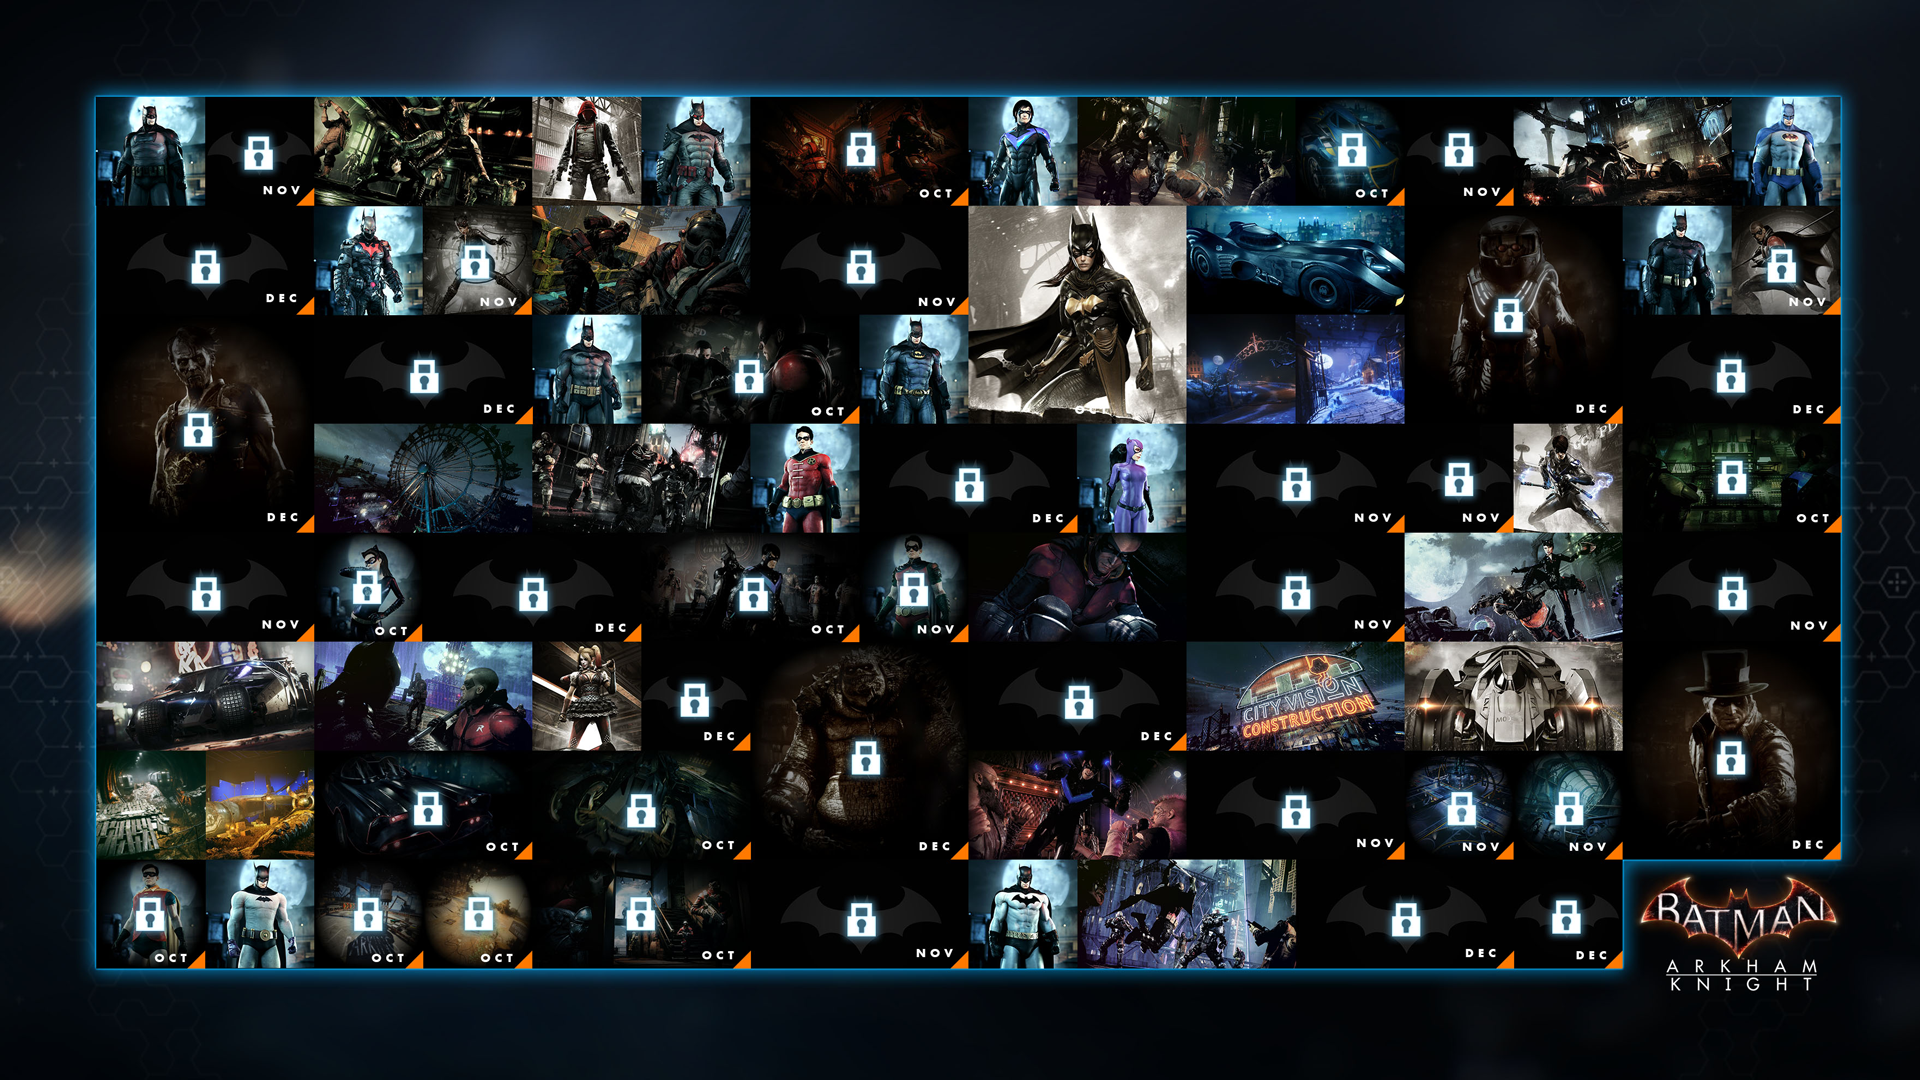 """Batman: Arkham Knight's"" Full Season Pass Revealed - Lots of Skins, AR Missions, and a Few Episodes"